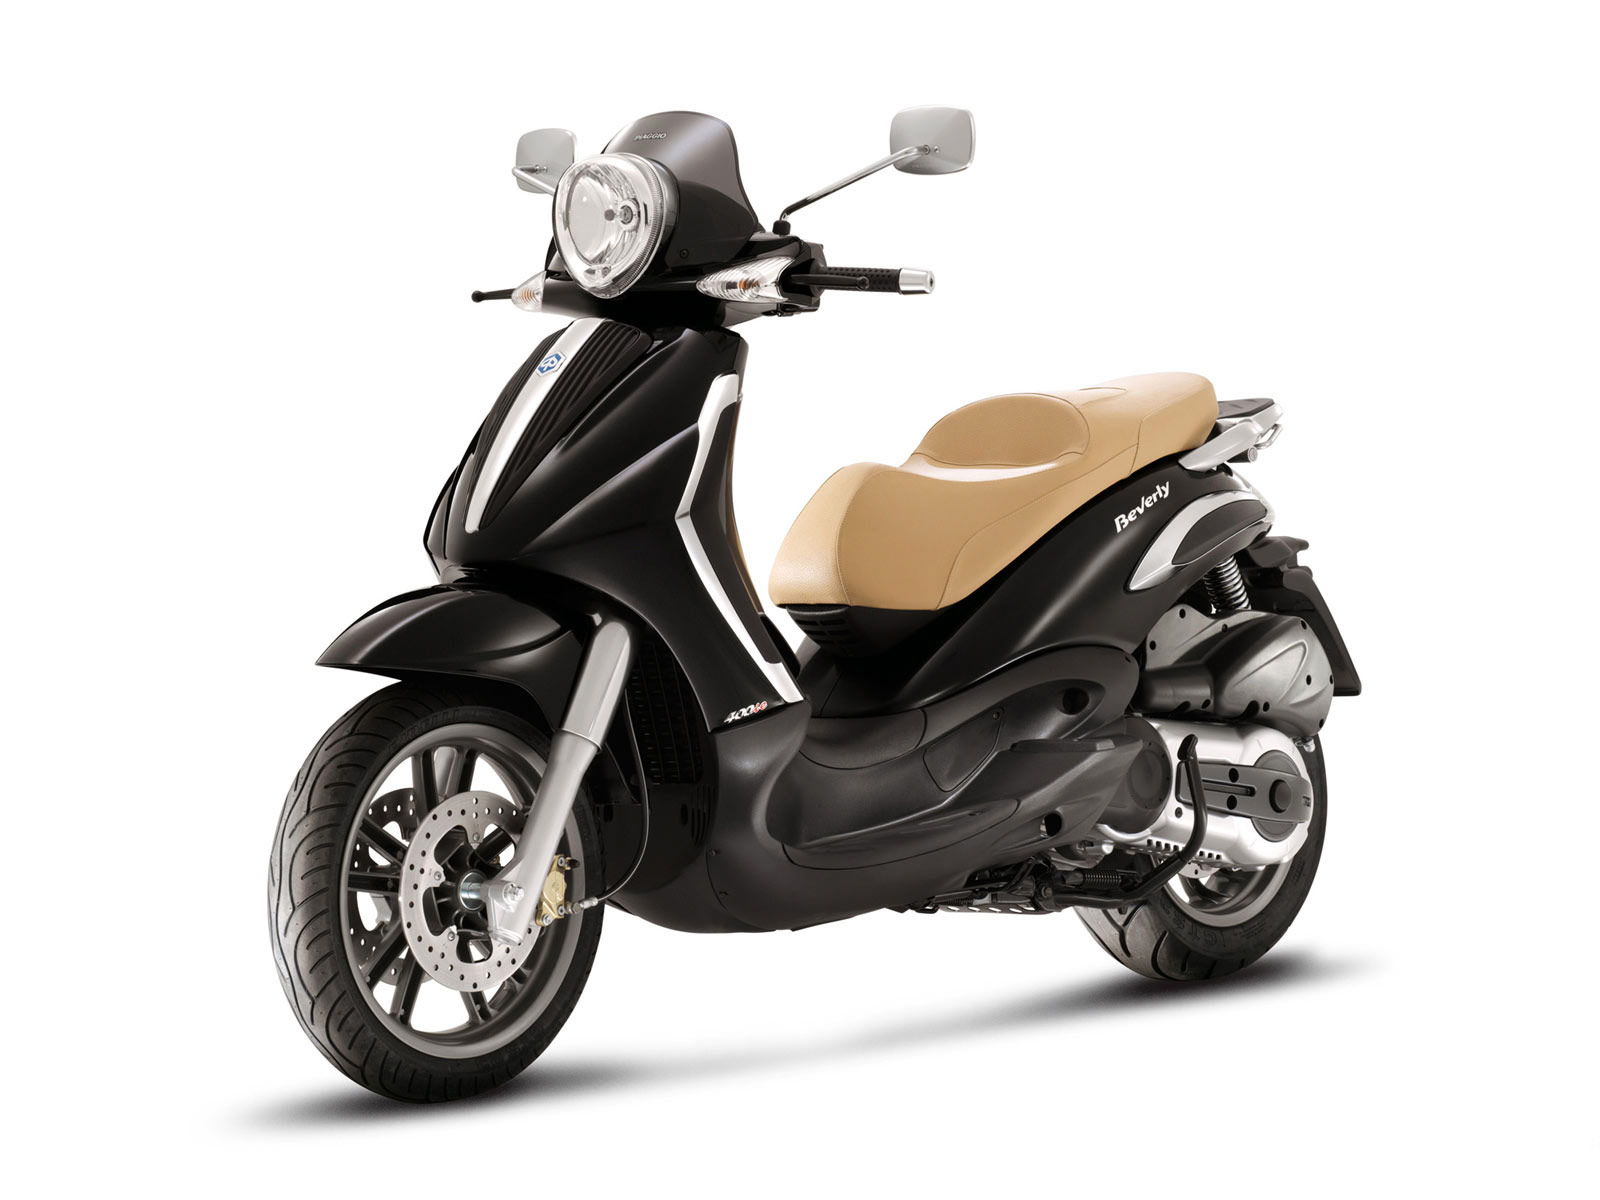 beverly tourer 400ie 2008 piaggio scooter pictures. Black Bedroom Furniture Sets. Home Design Ideas